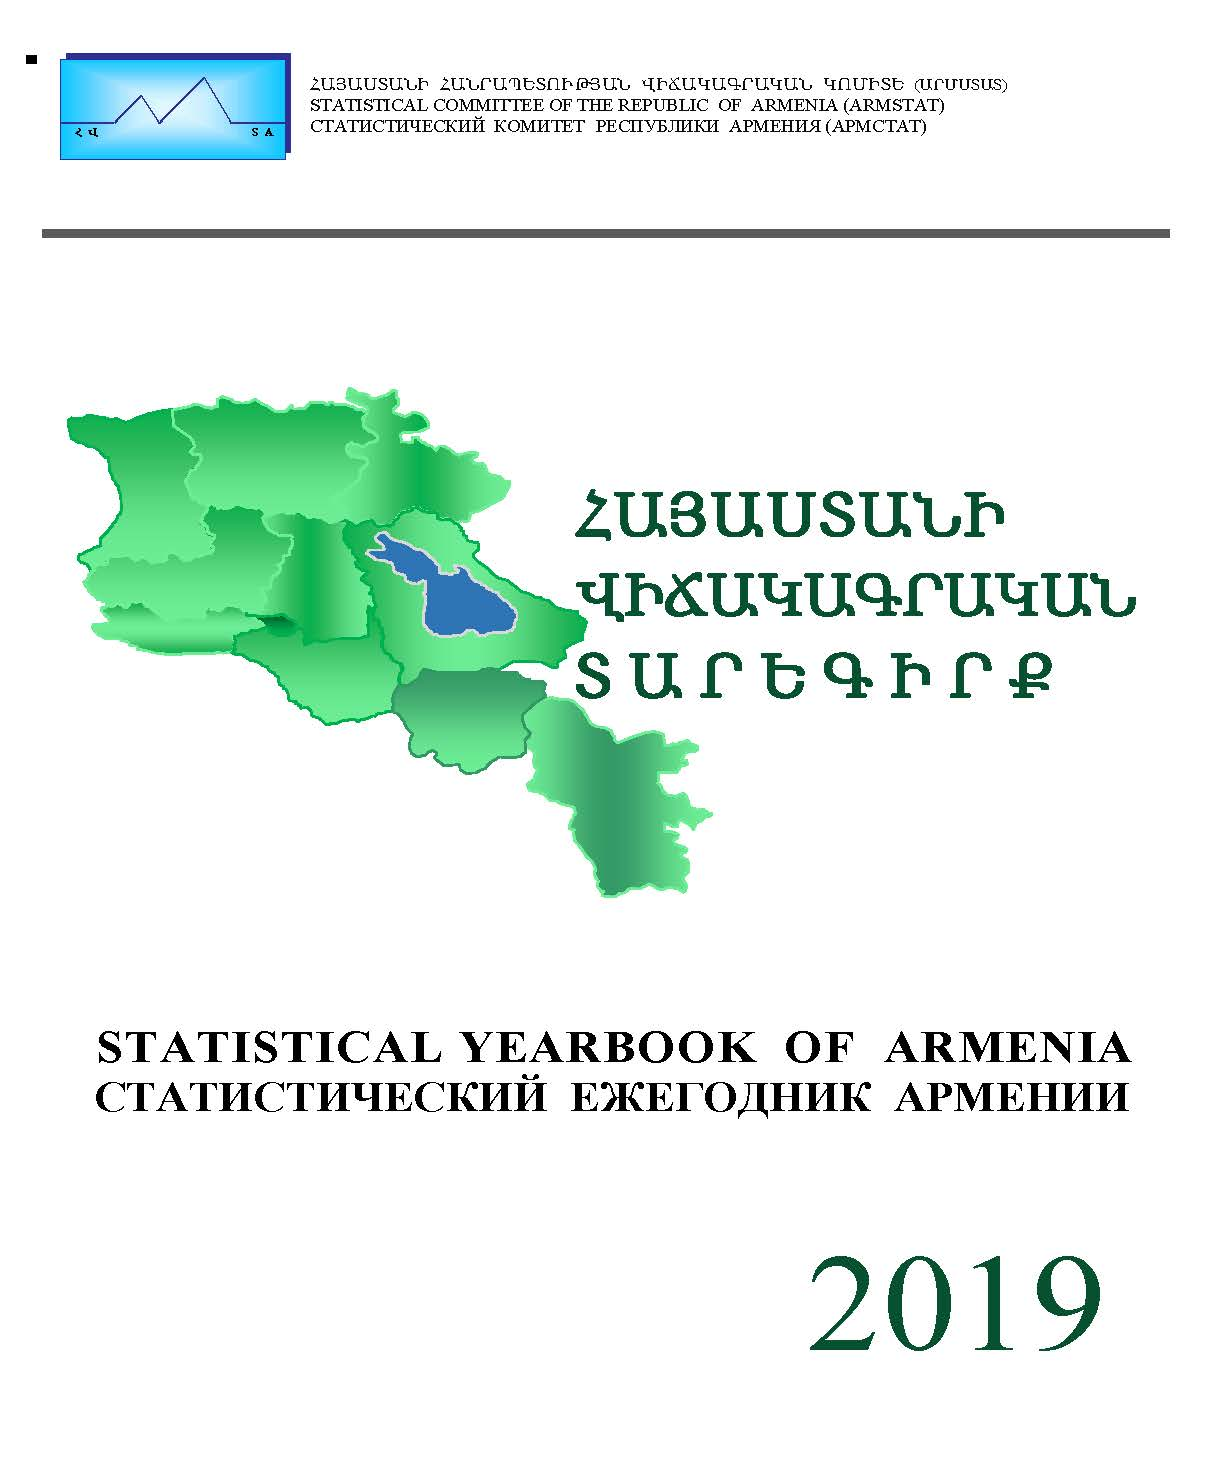 Statistical Yearbook of Armenia